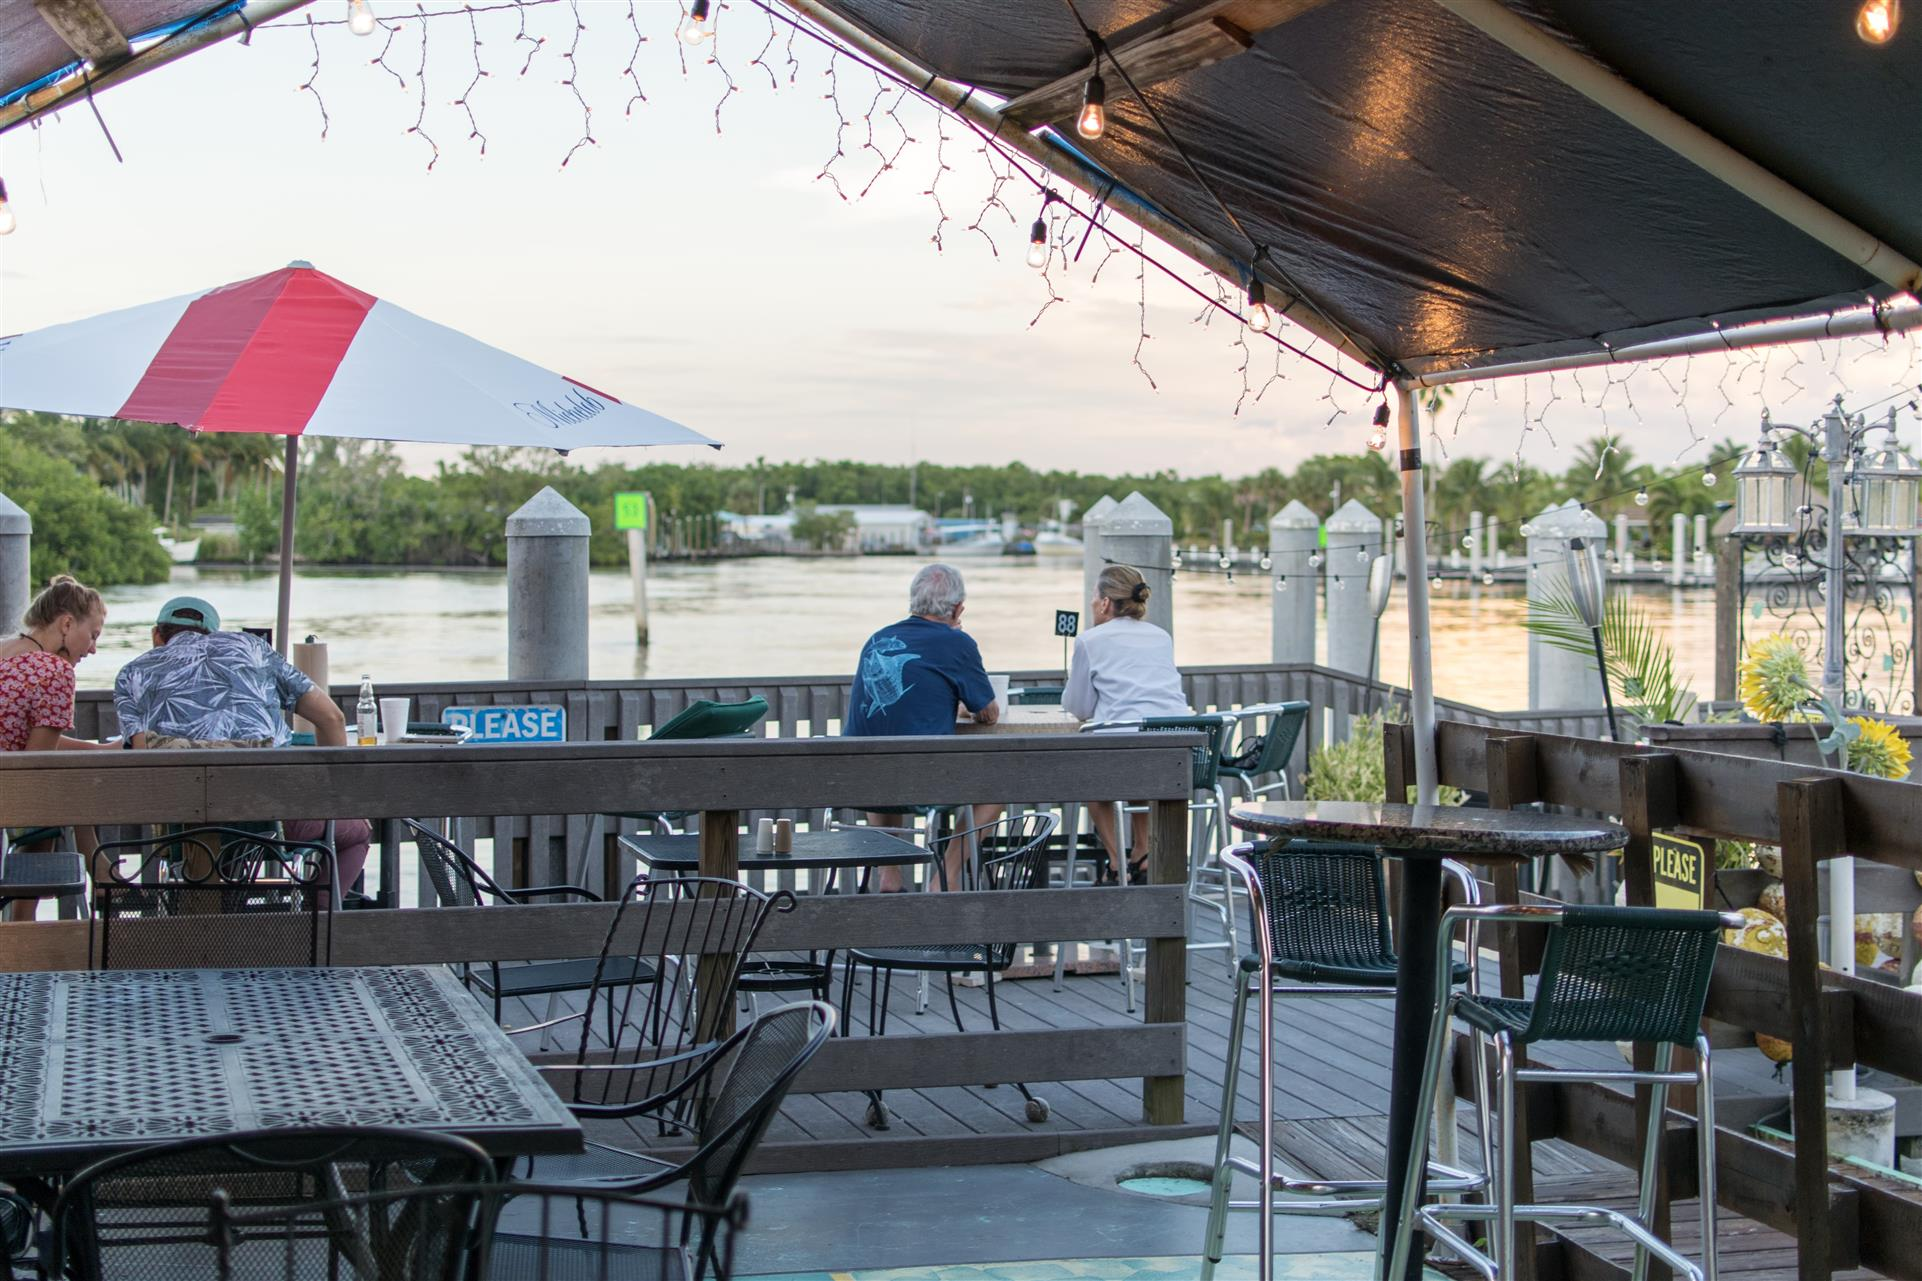 outdoor deck area with tables, chairs, lights and people sitting looking at the view